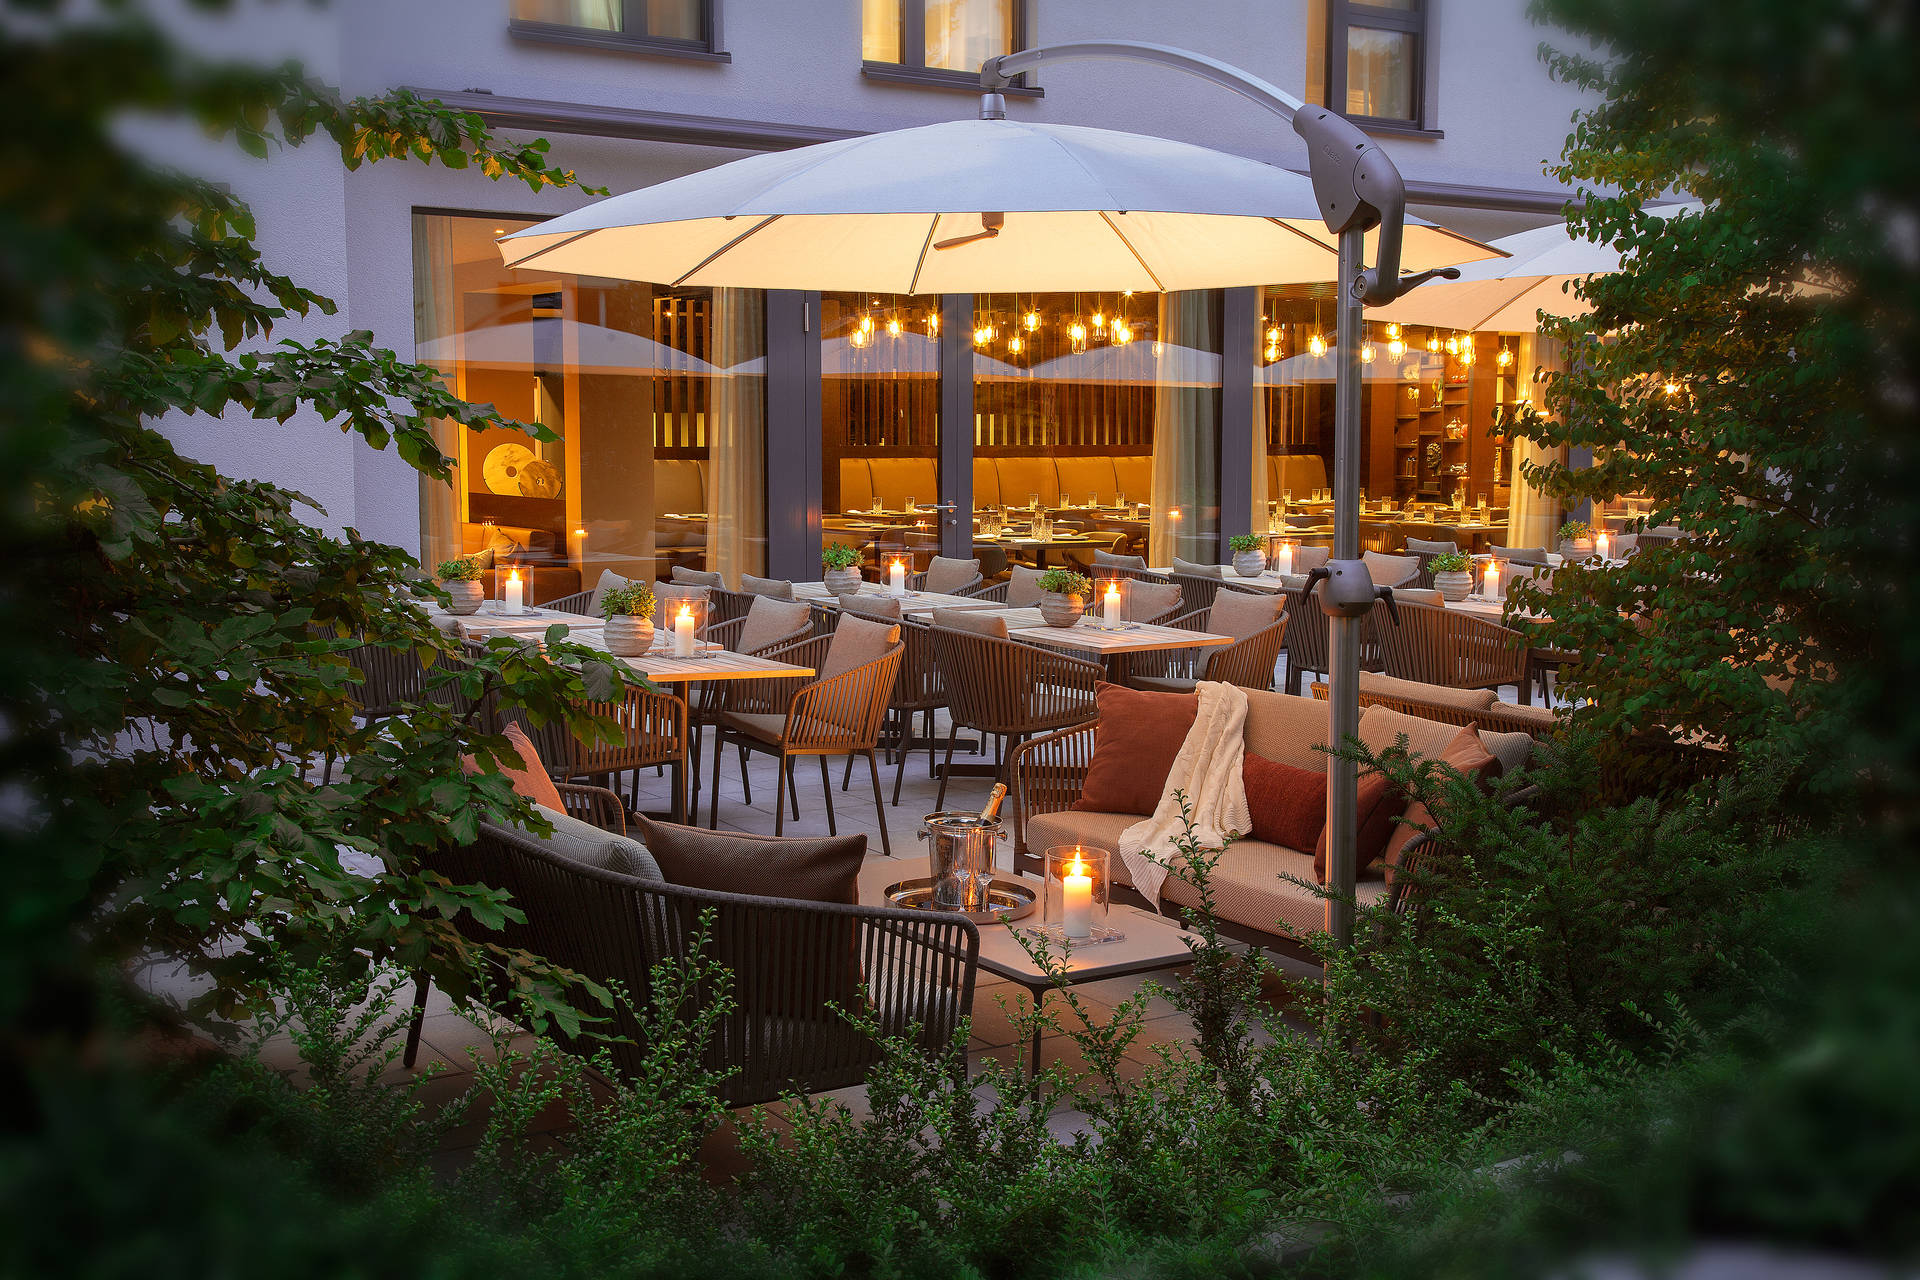 Garden at ACASA Suites Zurich for your relaxation and well-being